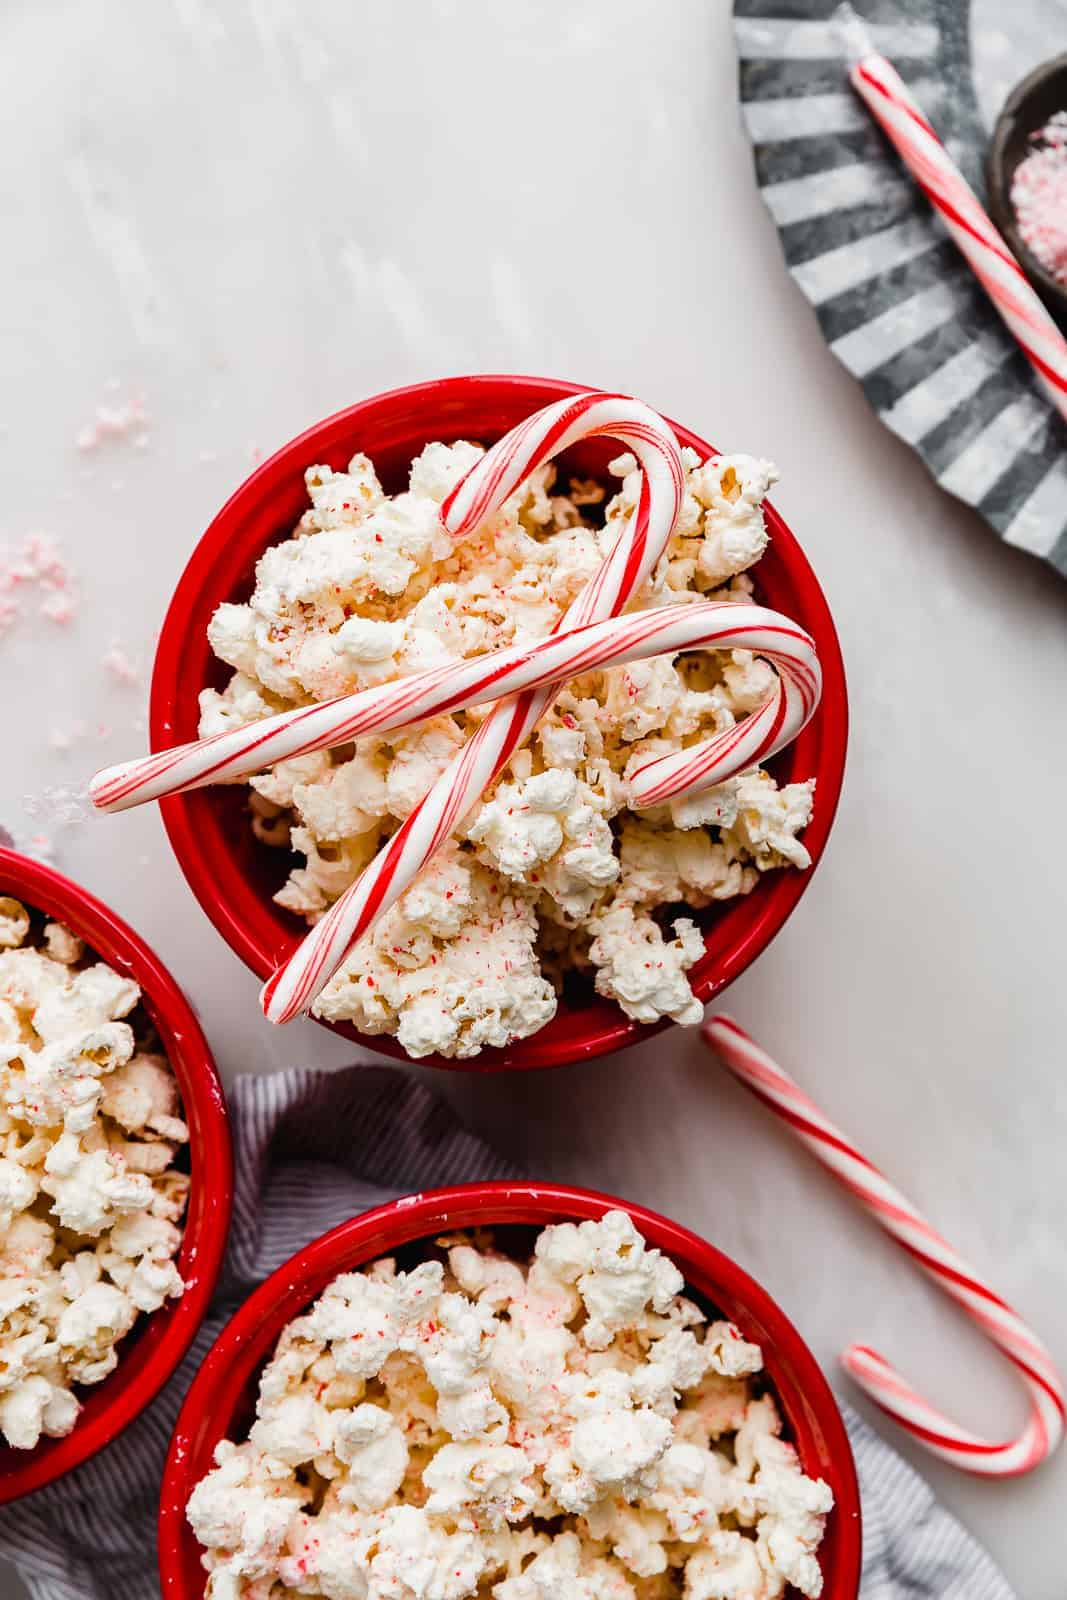 Candy Cane Popcorn in a red bowl with two candy canes on top of the popcorn.